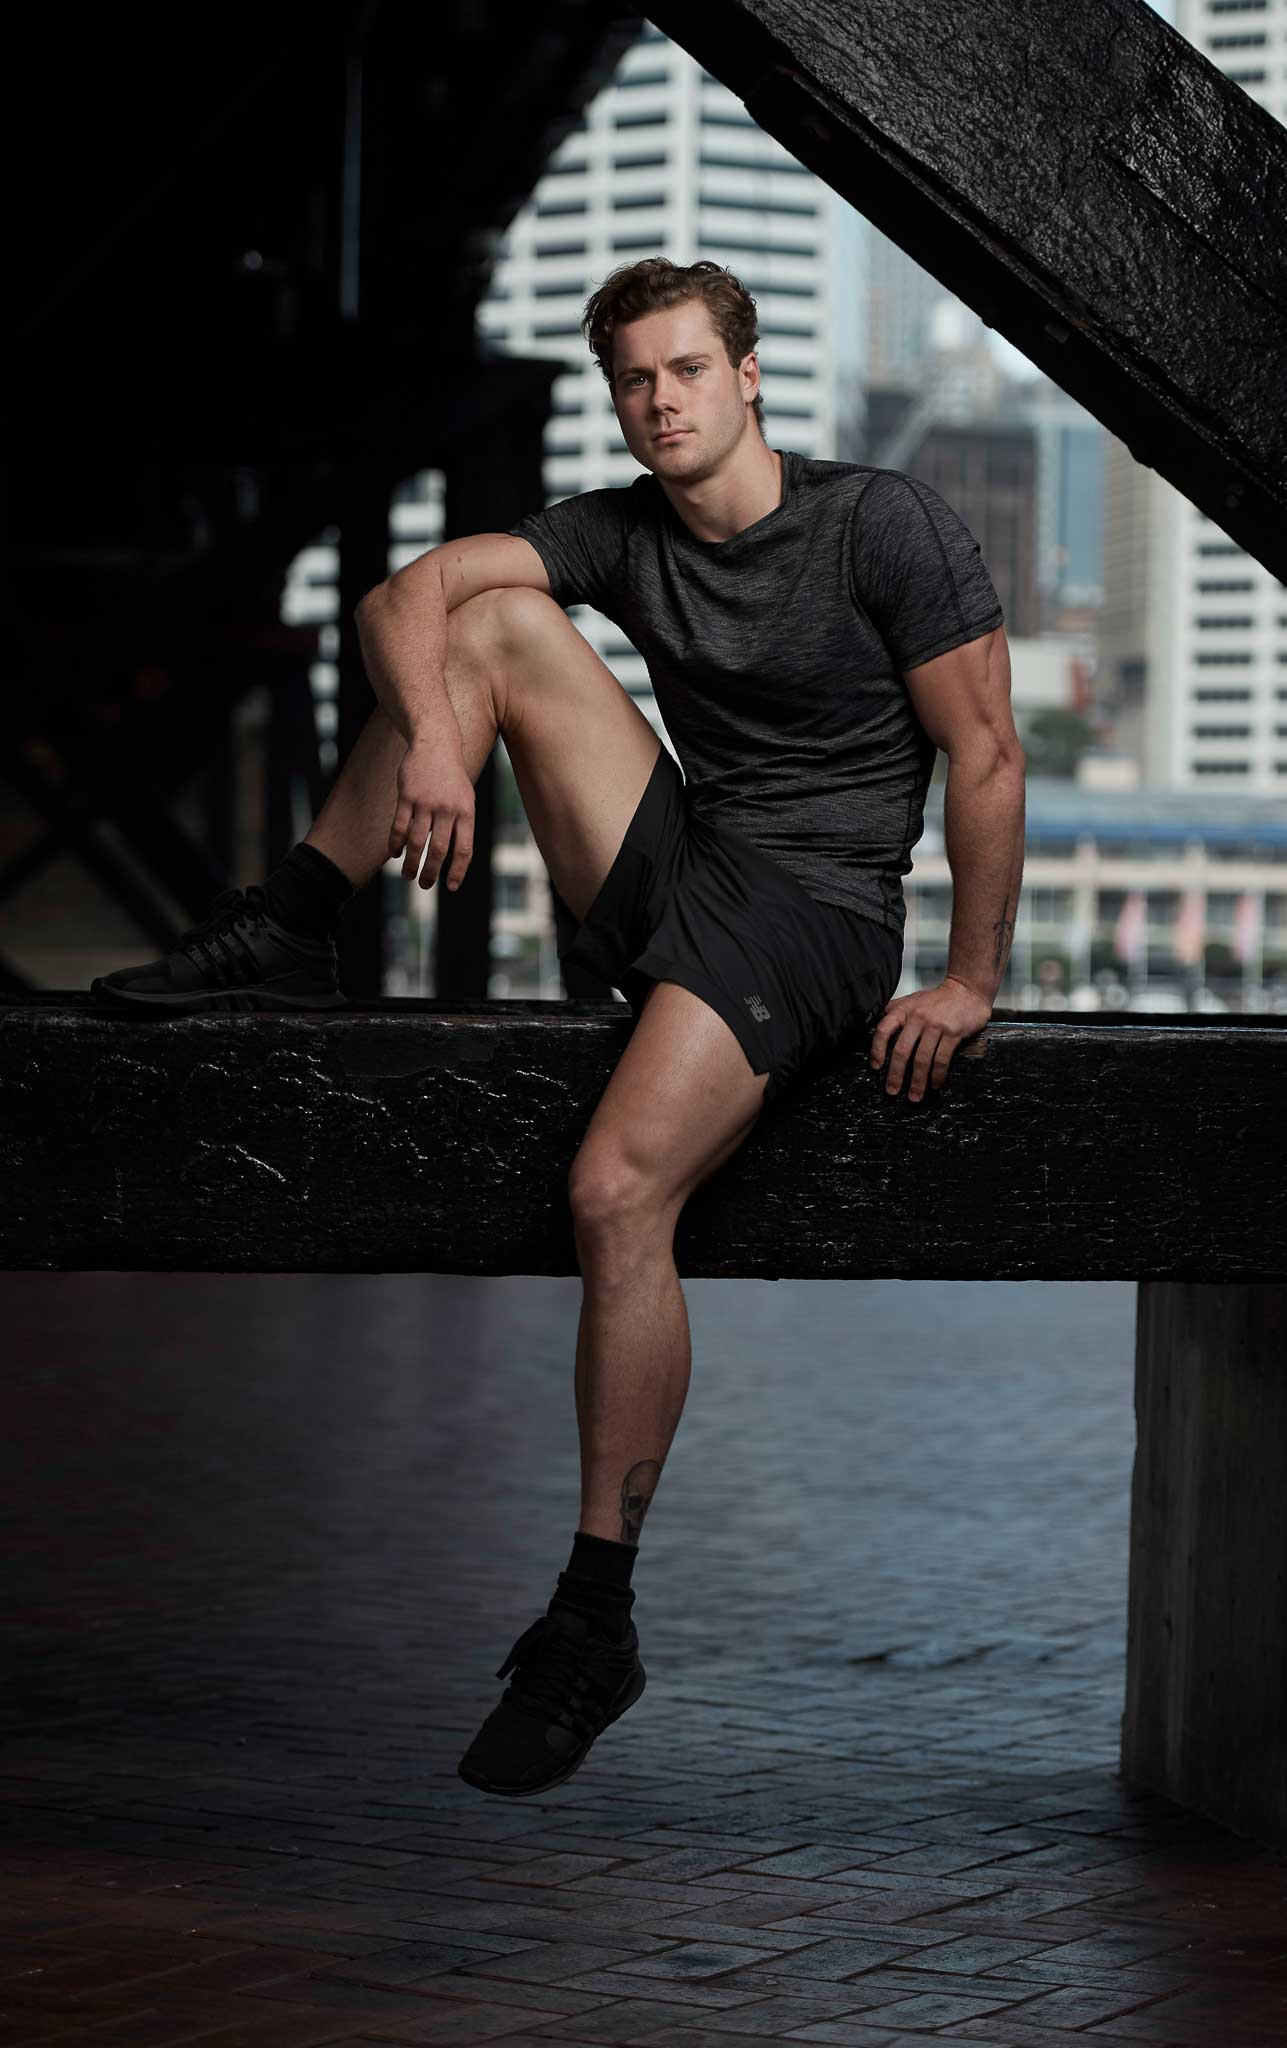 James Sydney male fitness model